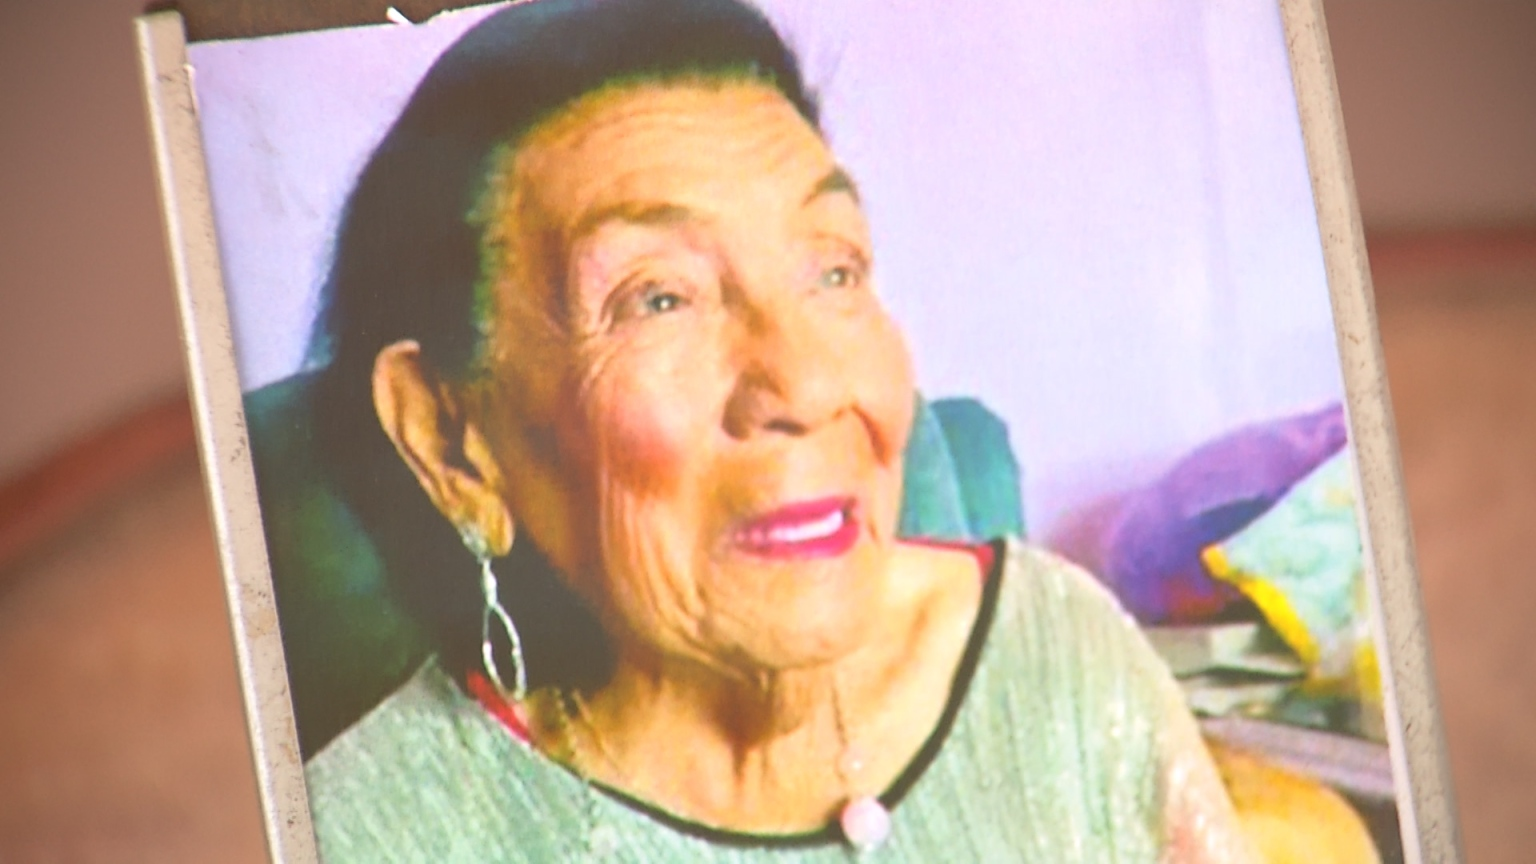 101-year-old resident treasures her memories of old Mecca